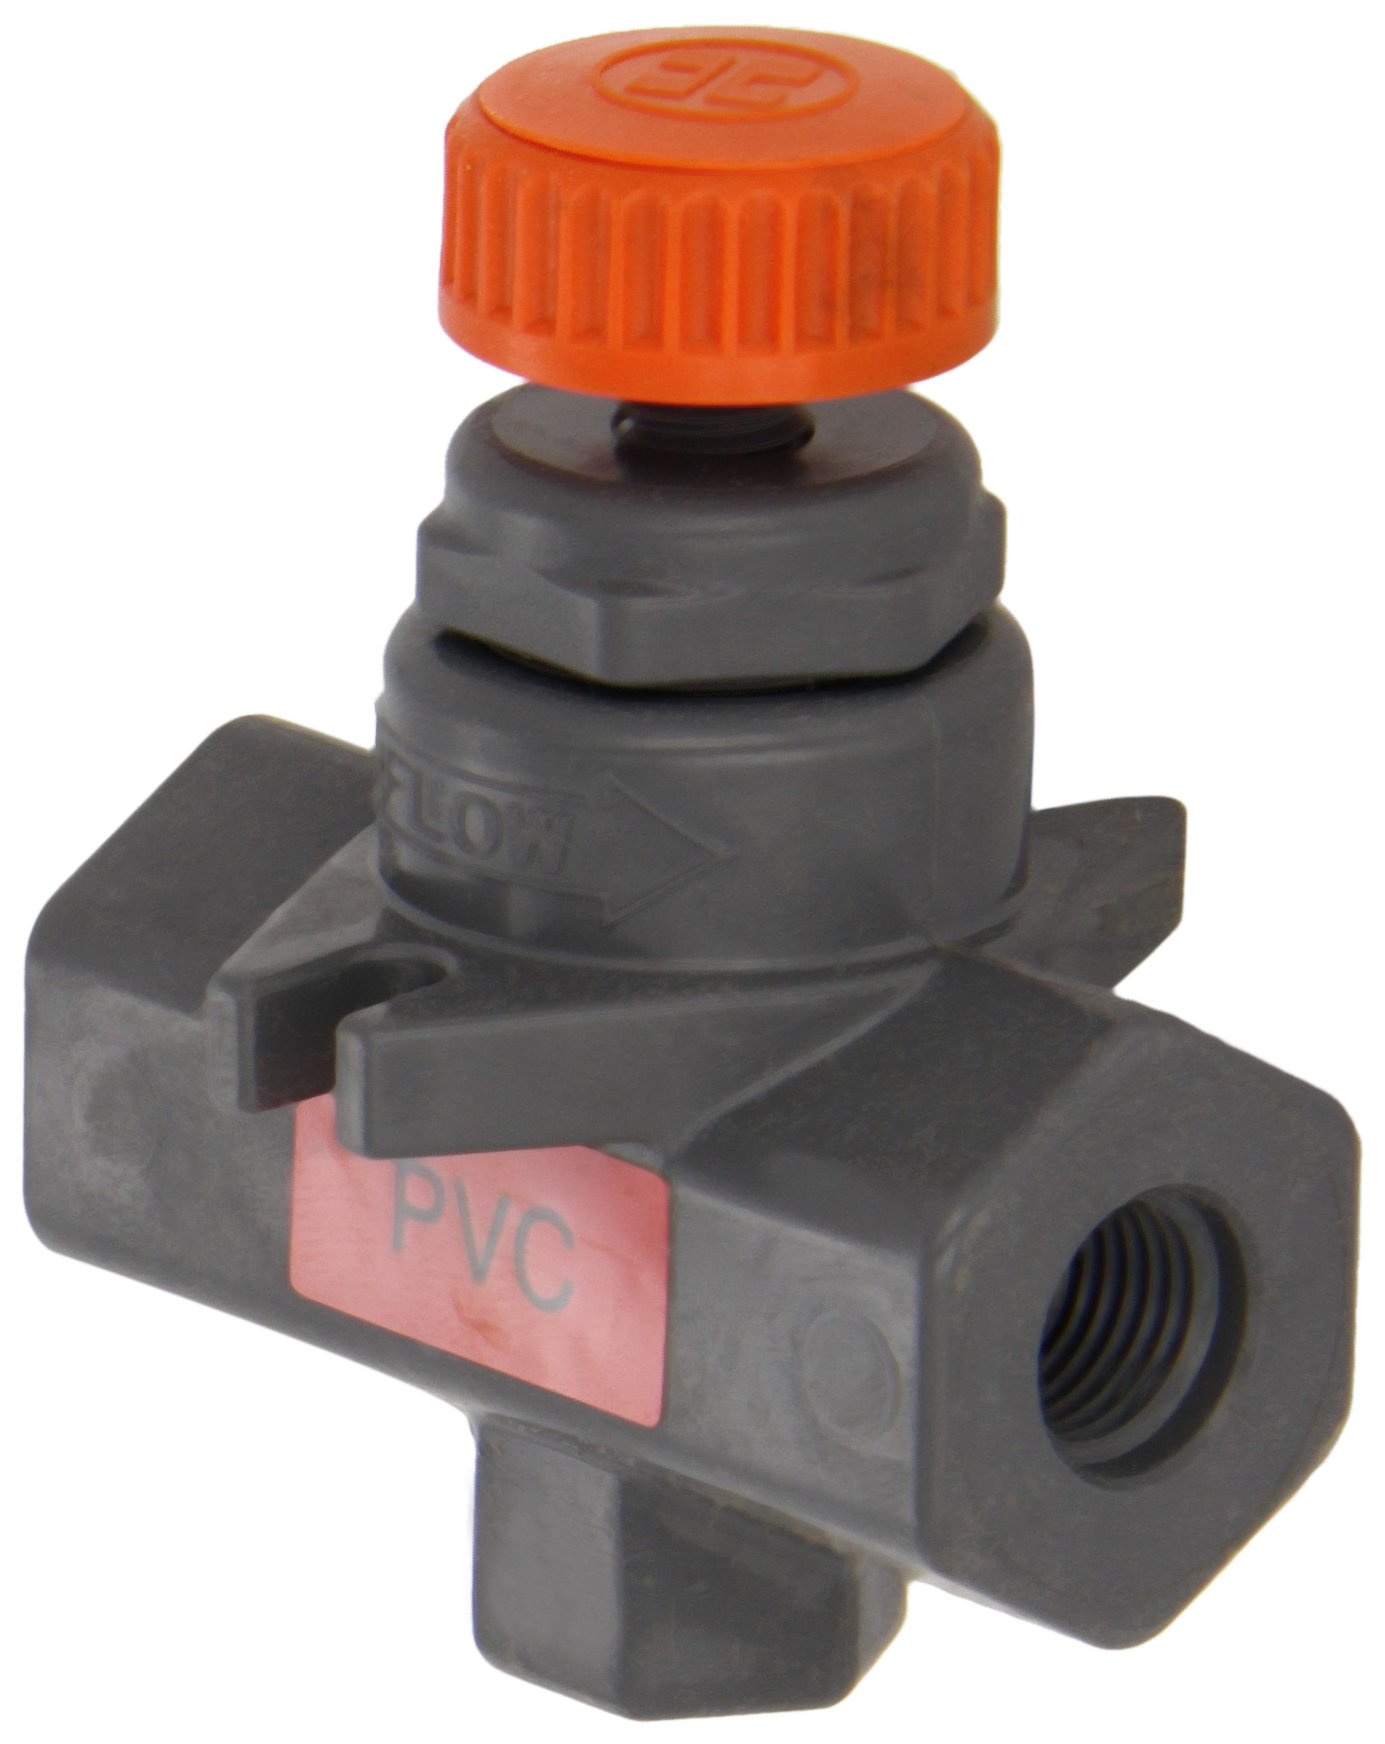 Hayward NVA1025T Series NVA Needle Valve, Threaded End, PVC, 1/4'' Size